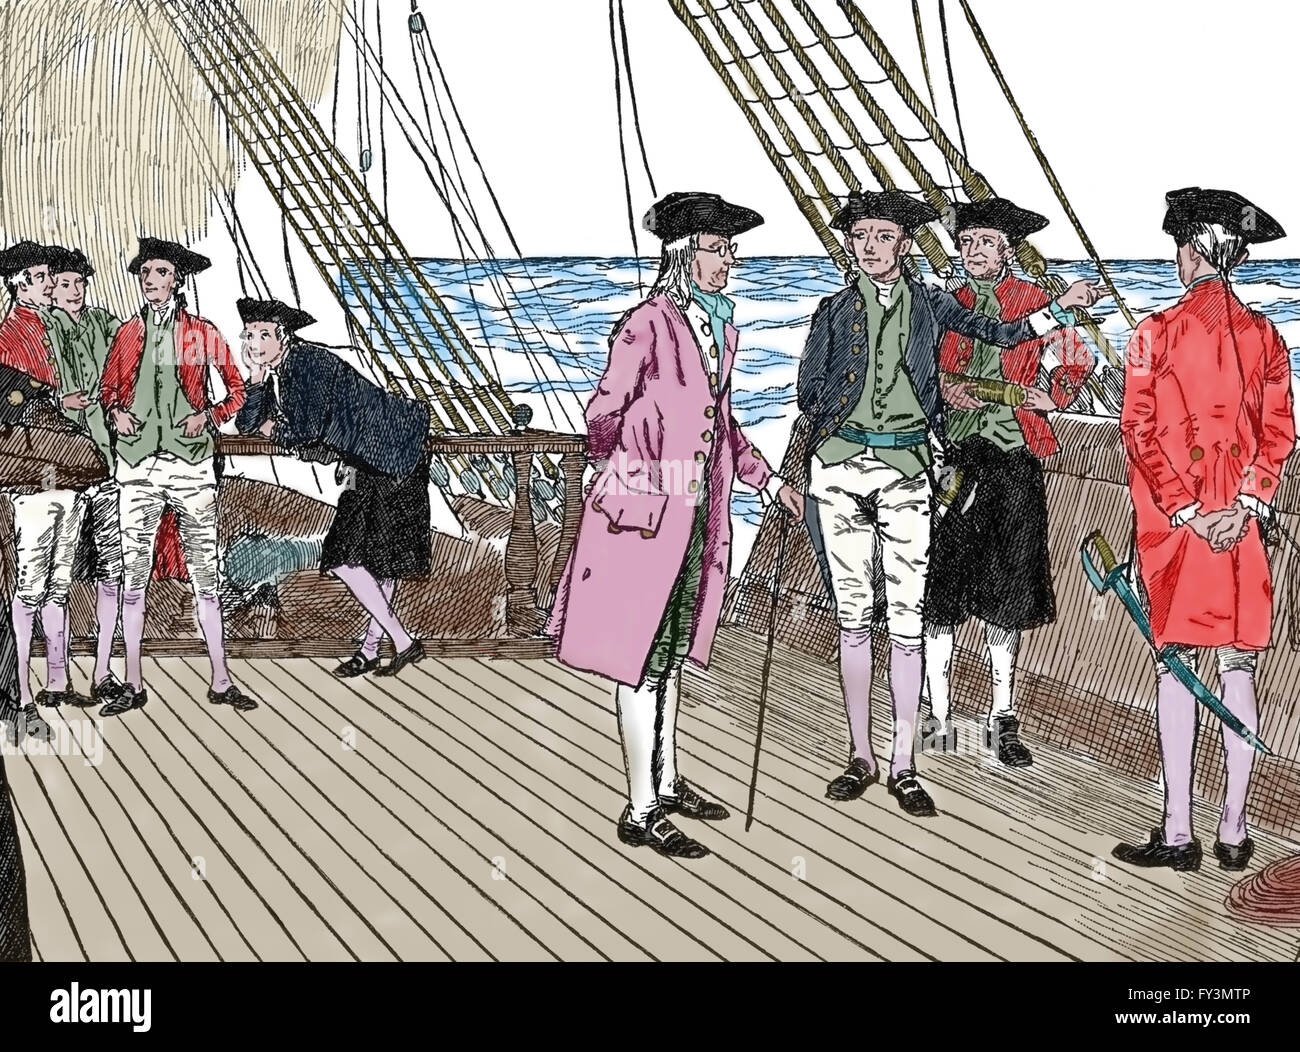 Travel to France of Benjamin Franklin (1706-1790). Engraving. Colored. 19th century. Stock Photo